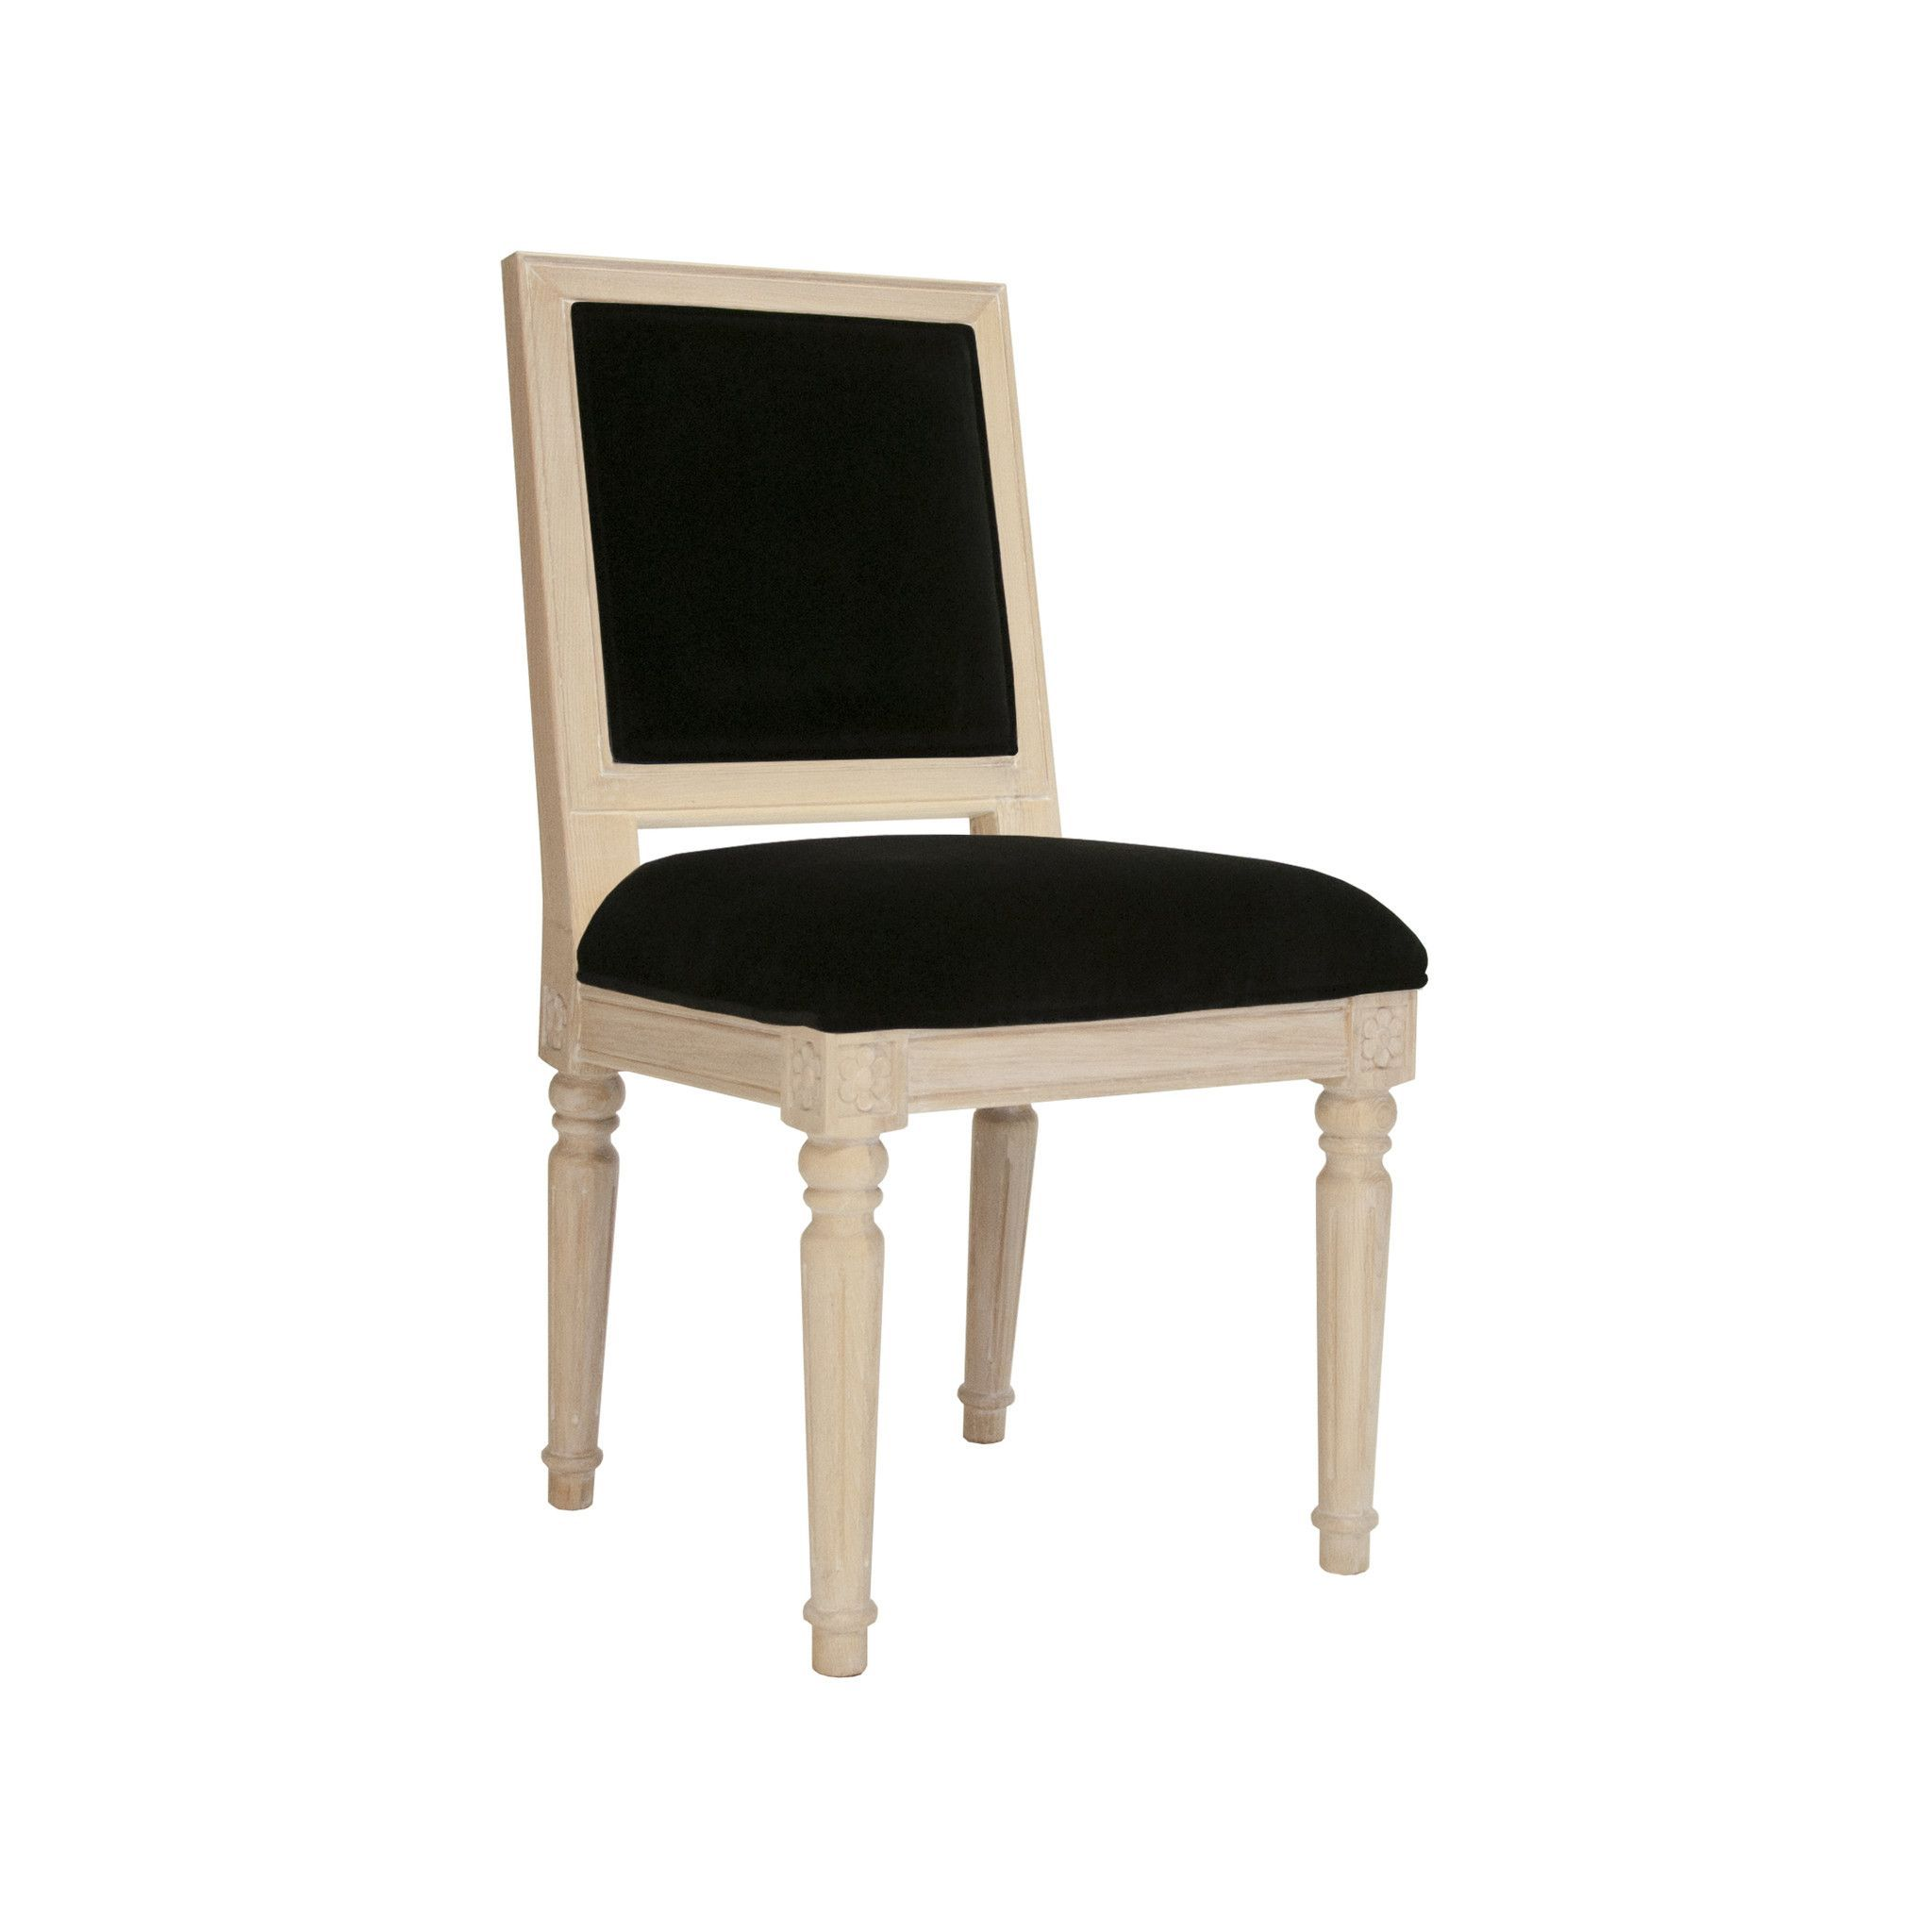 Information: Worlds Away Scarsdale Chair  Features: Worlds Away offers the Scarsdale cerused oak or black cerused oak square back chair in lime green, navy, bl